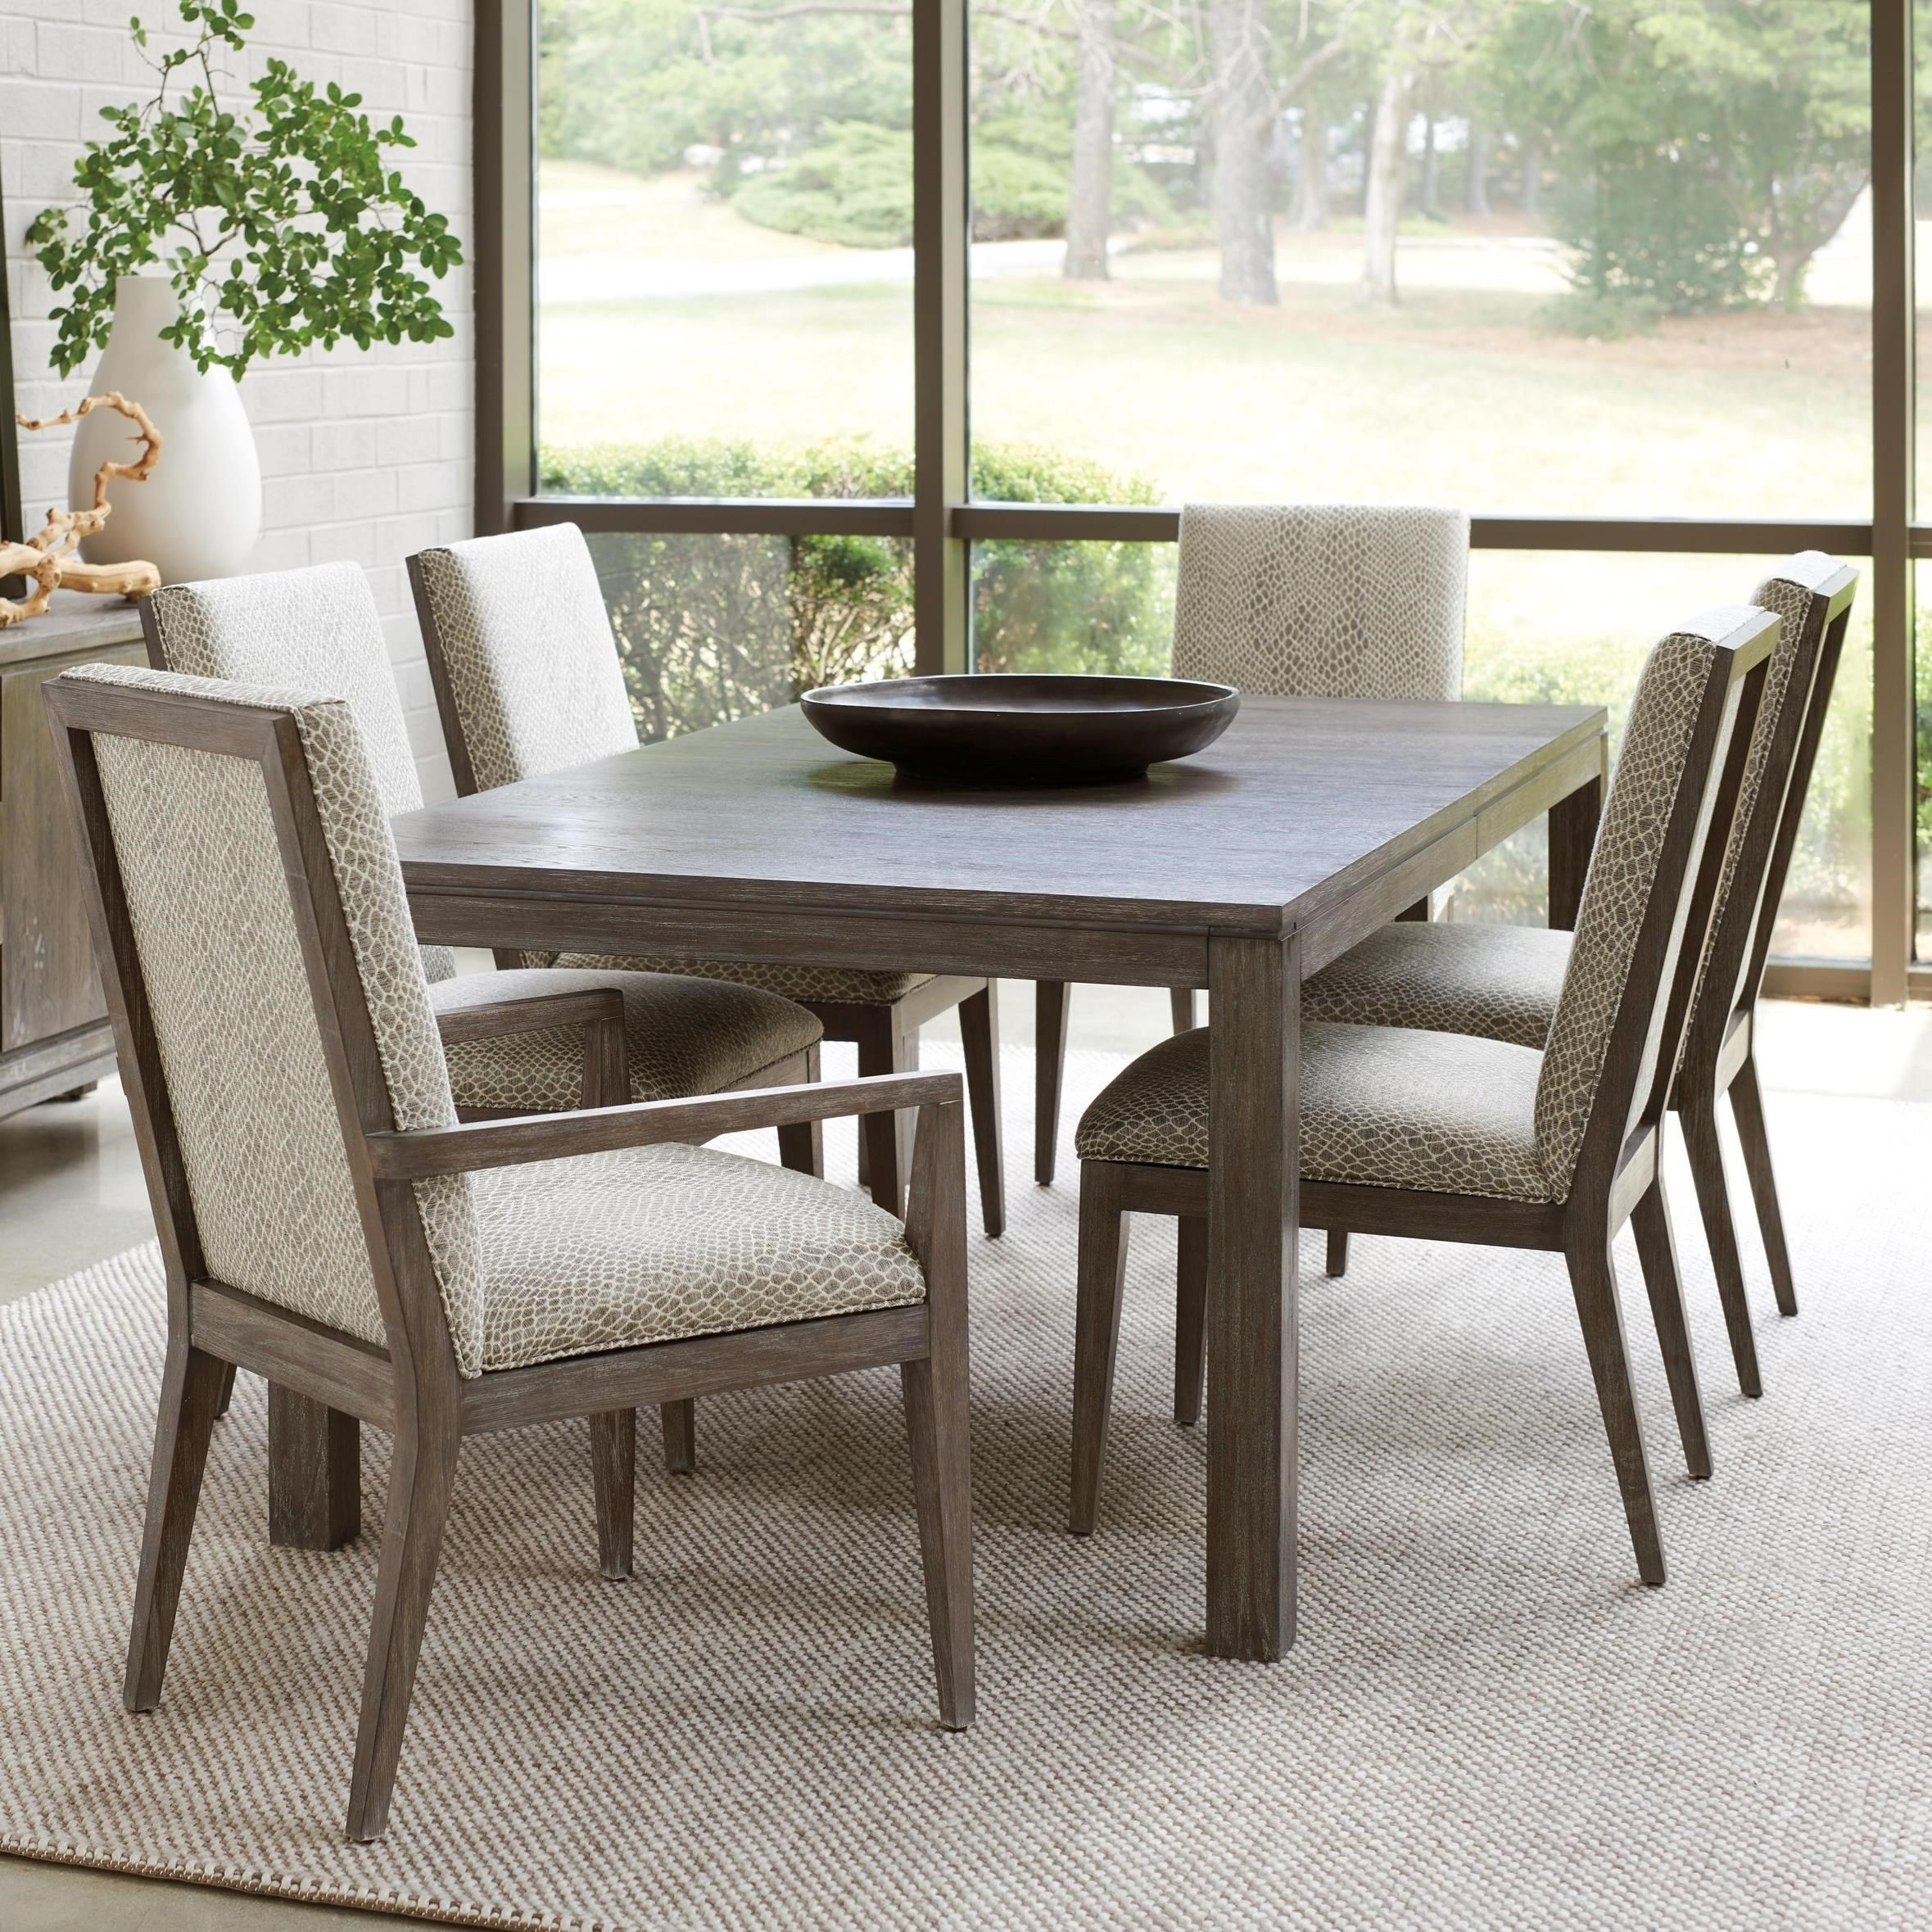 Santana Seven Piece Dining Set With Marin Table And Customizable Dining Chairs By Lexington At Baer S Furniture Rectangular Dining Table Dining Table Dining Table With Leaf